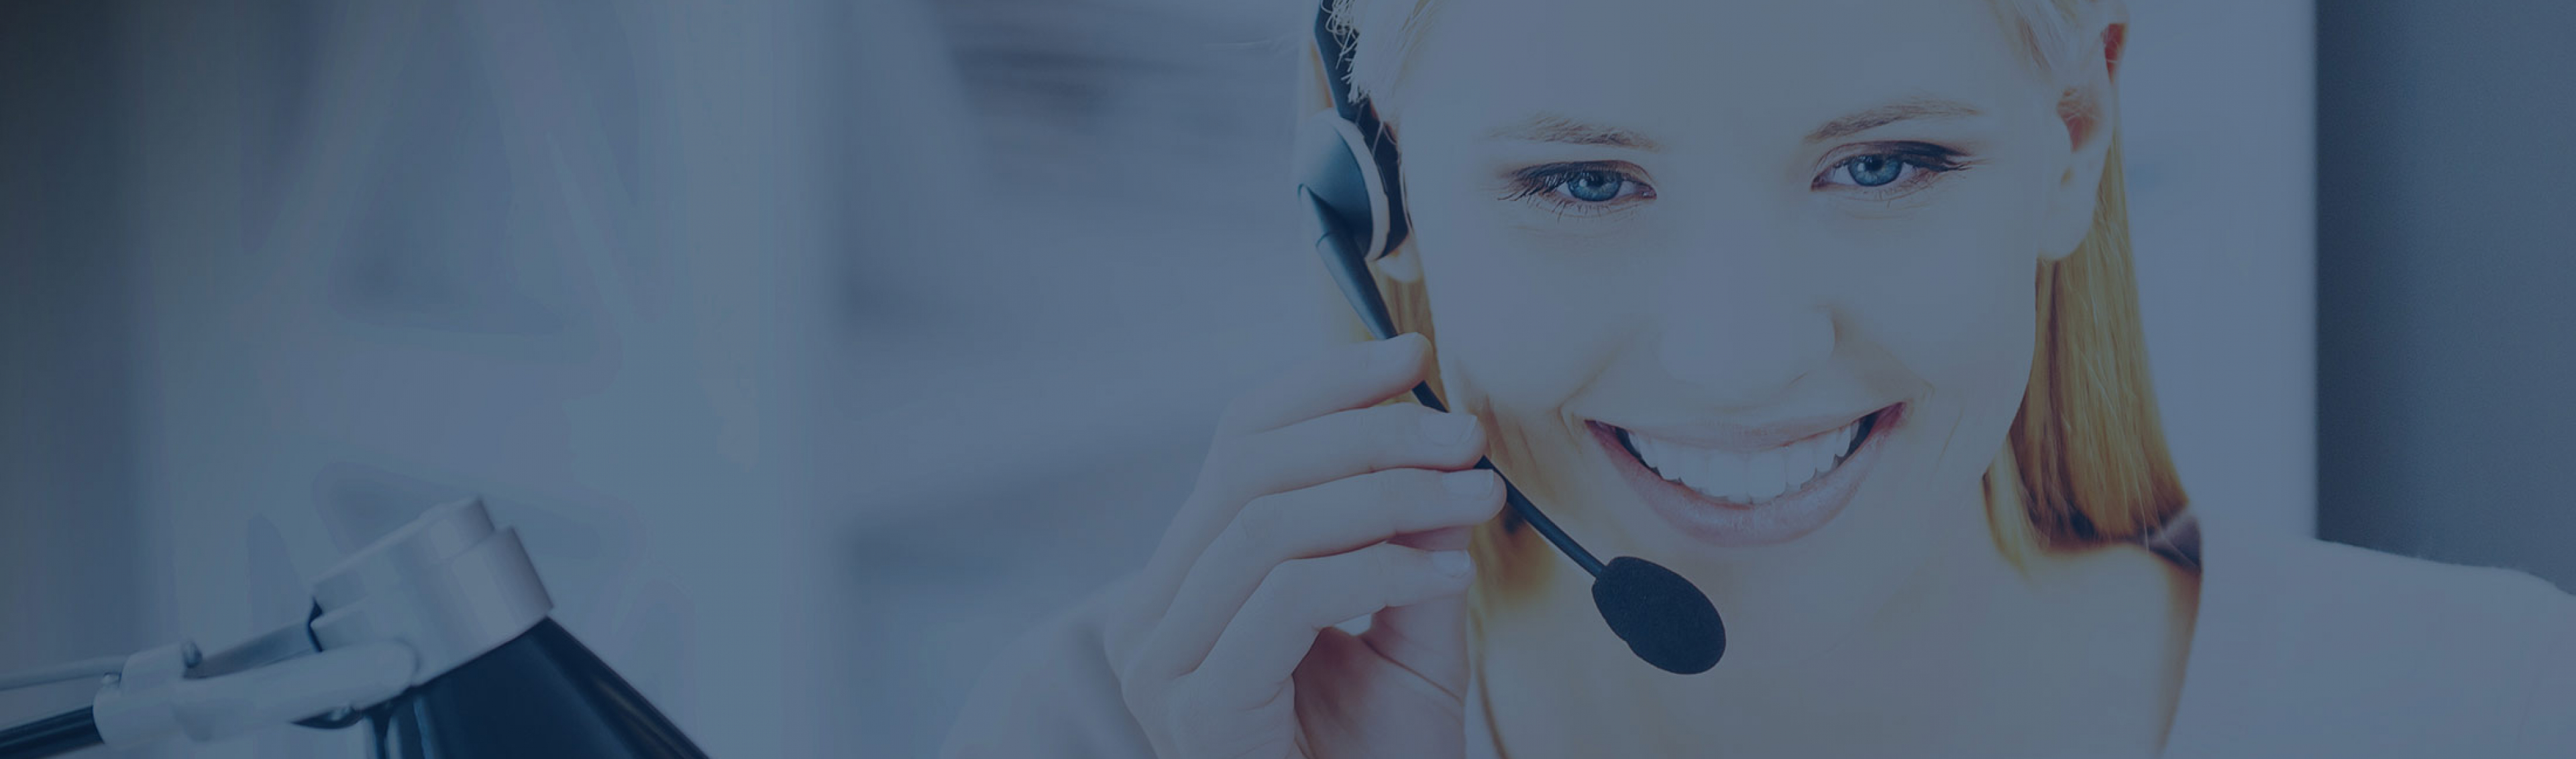 support person with headset